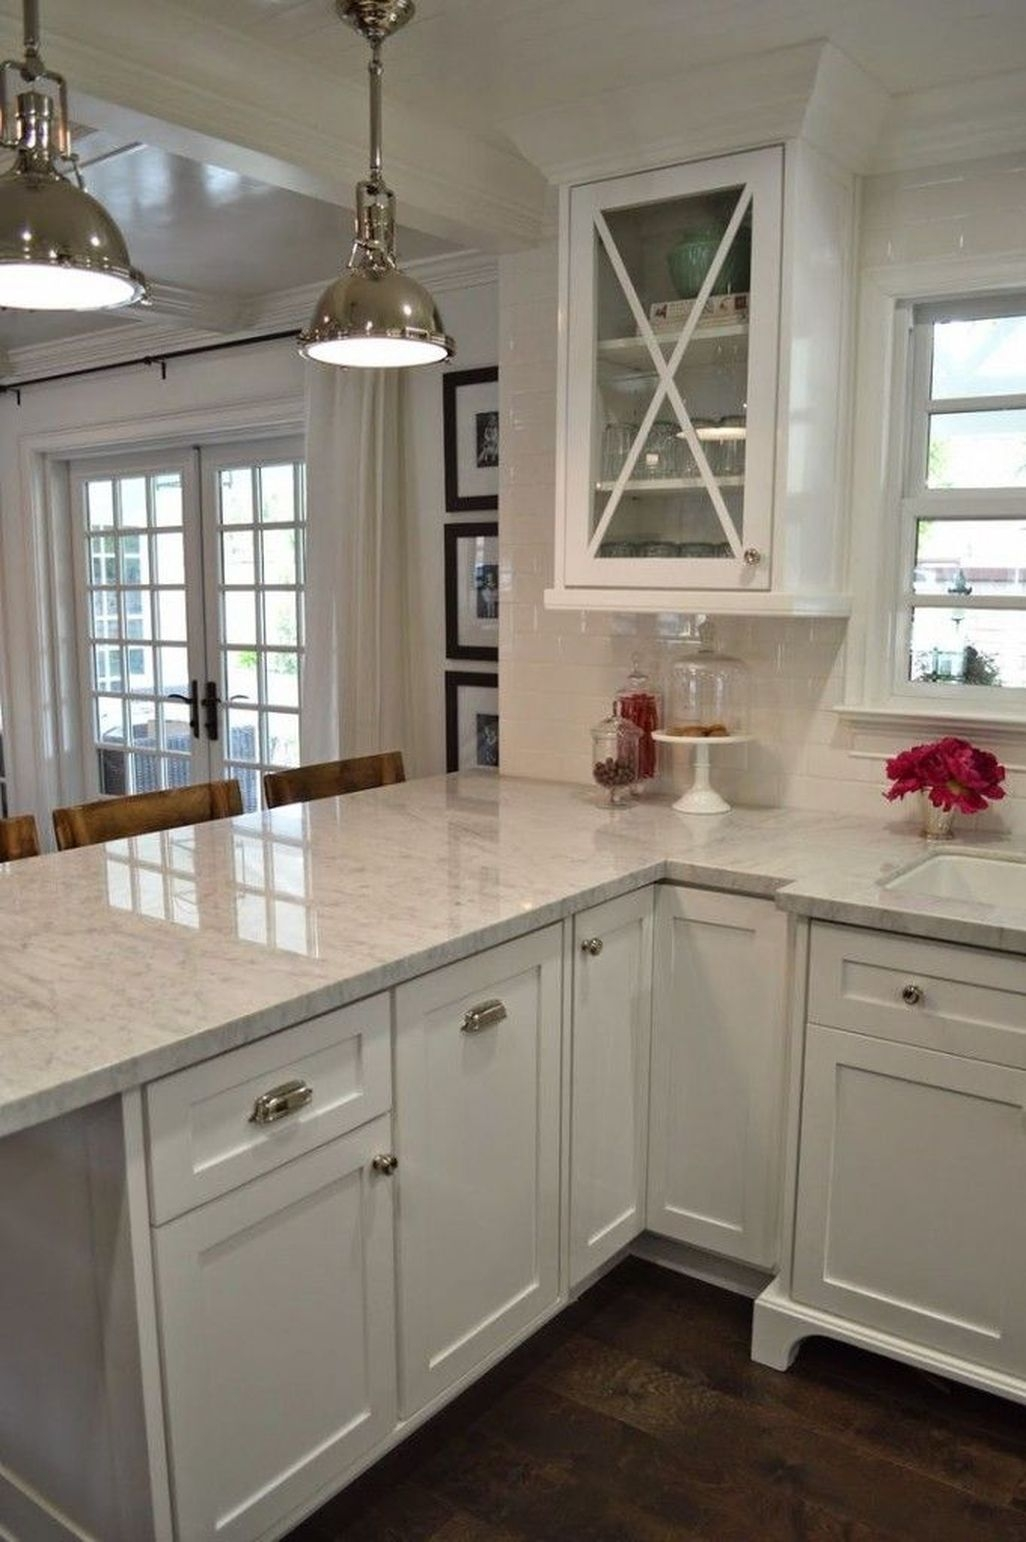 Awesome White Kitchen Backsplash Design Ideas 39